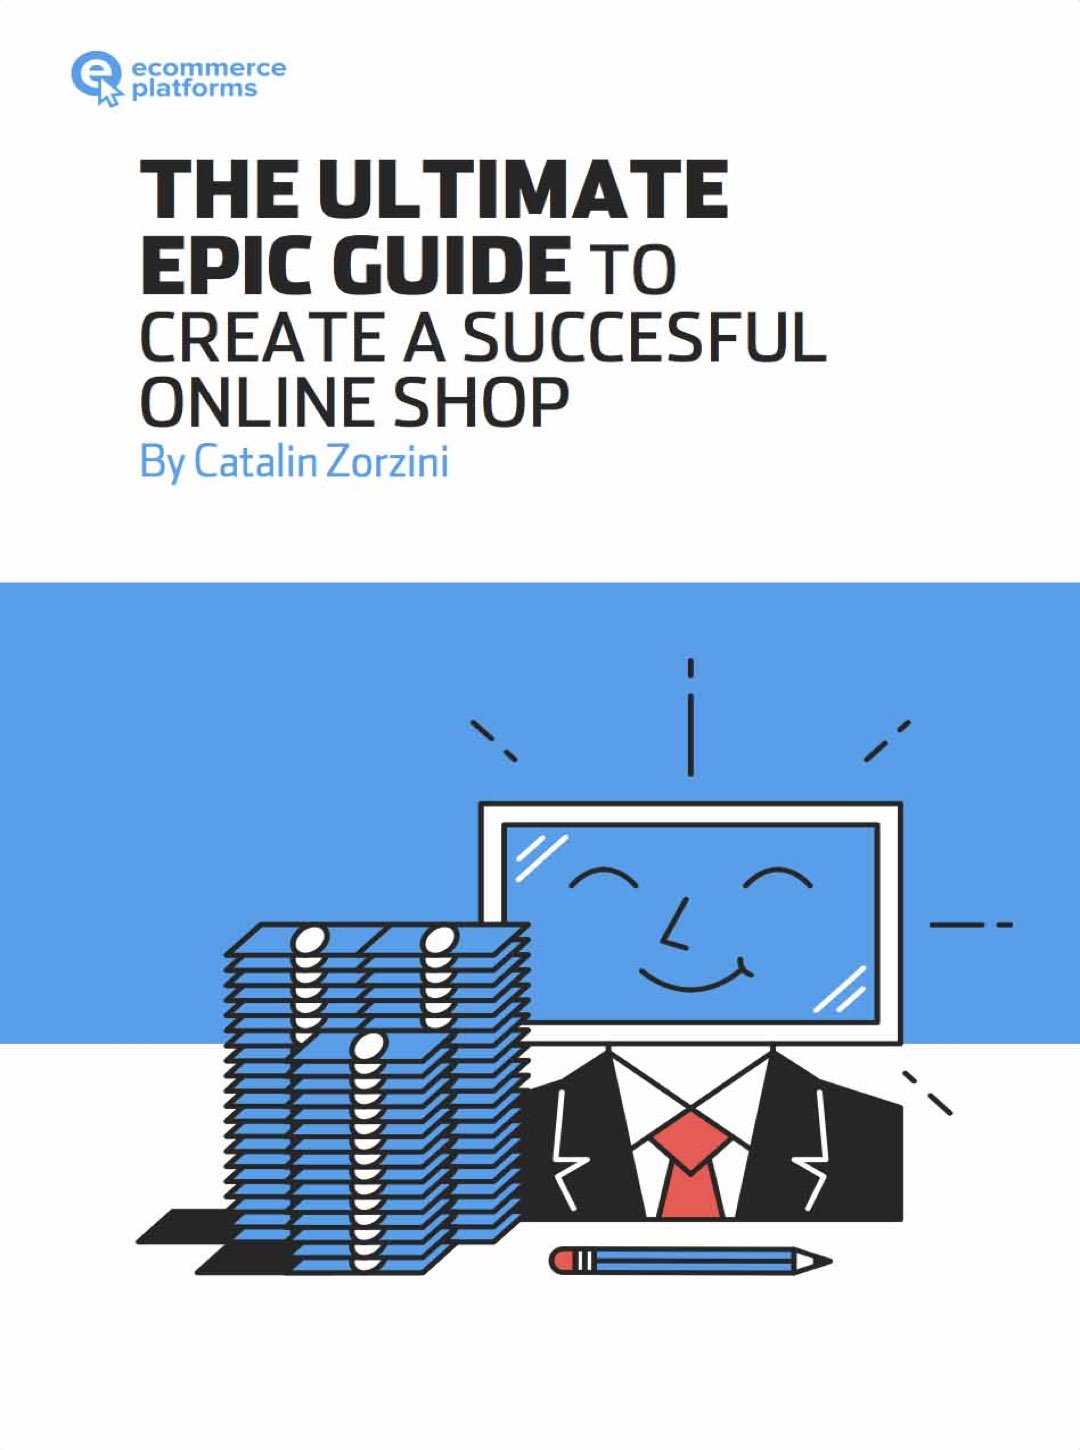 The Ultimate Epic Guide to Create a Successful Online Shop